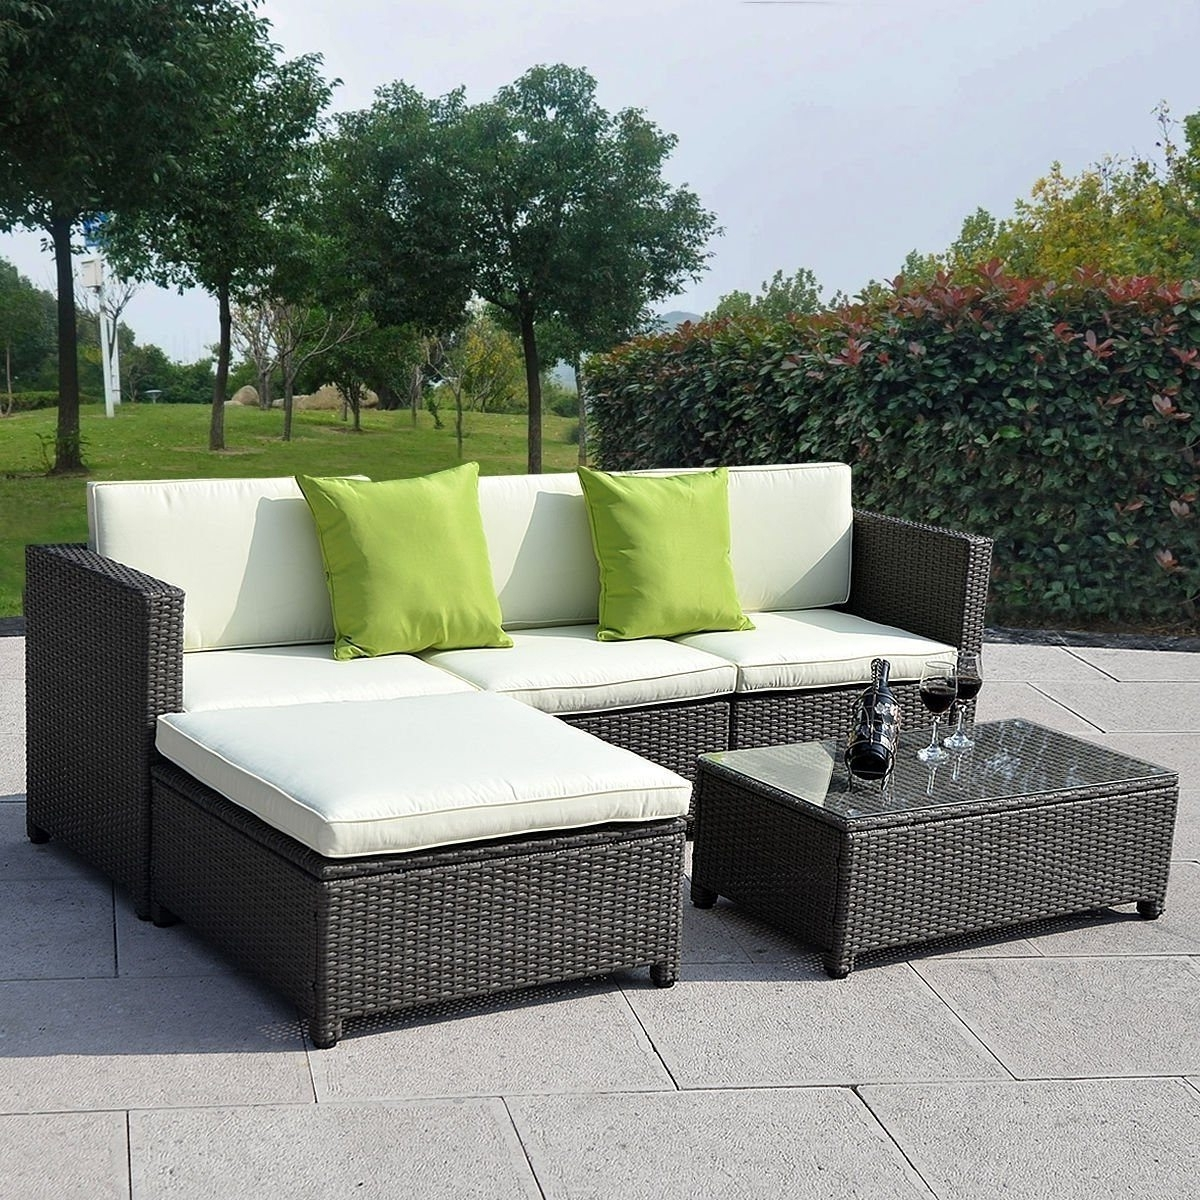 Outdoor Patio Sofa Furniture – Outdoor Designs Inside 2017 Outdoor Sofa Chairs (View 6 of 15)